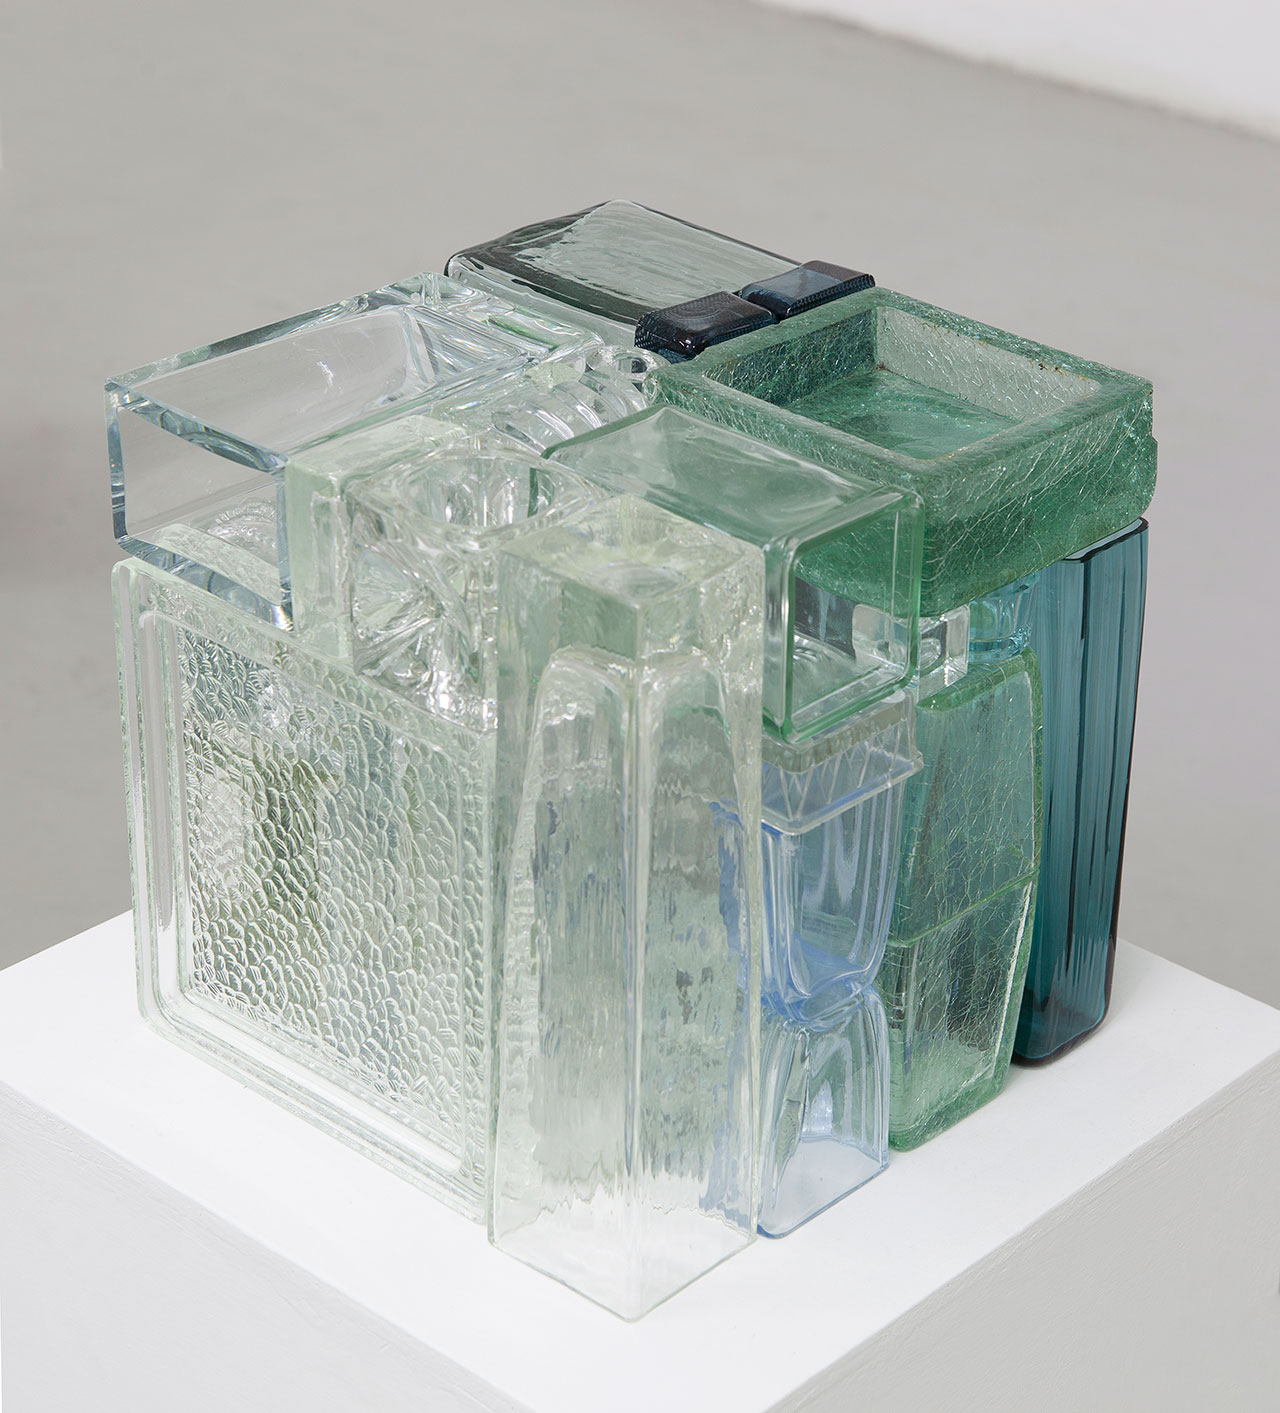 Michael Johansson, Trasparent crossfade, 2017, glass items, 28x28x28 cm. Courtesy: The Flat – Massimo Carasi, Milan. Photo © Michael Johansson.